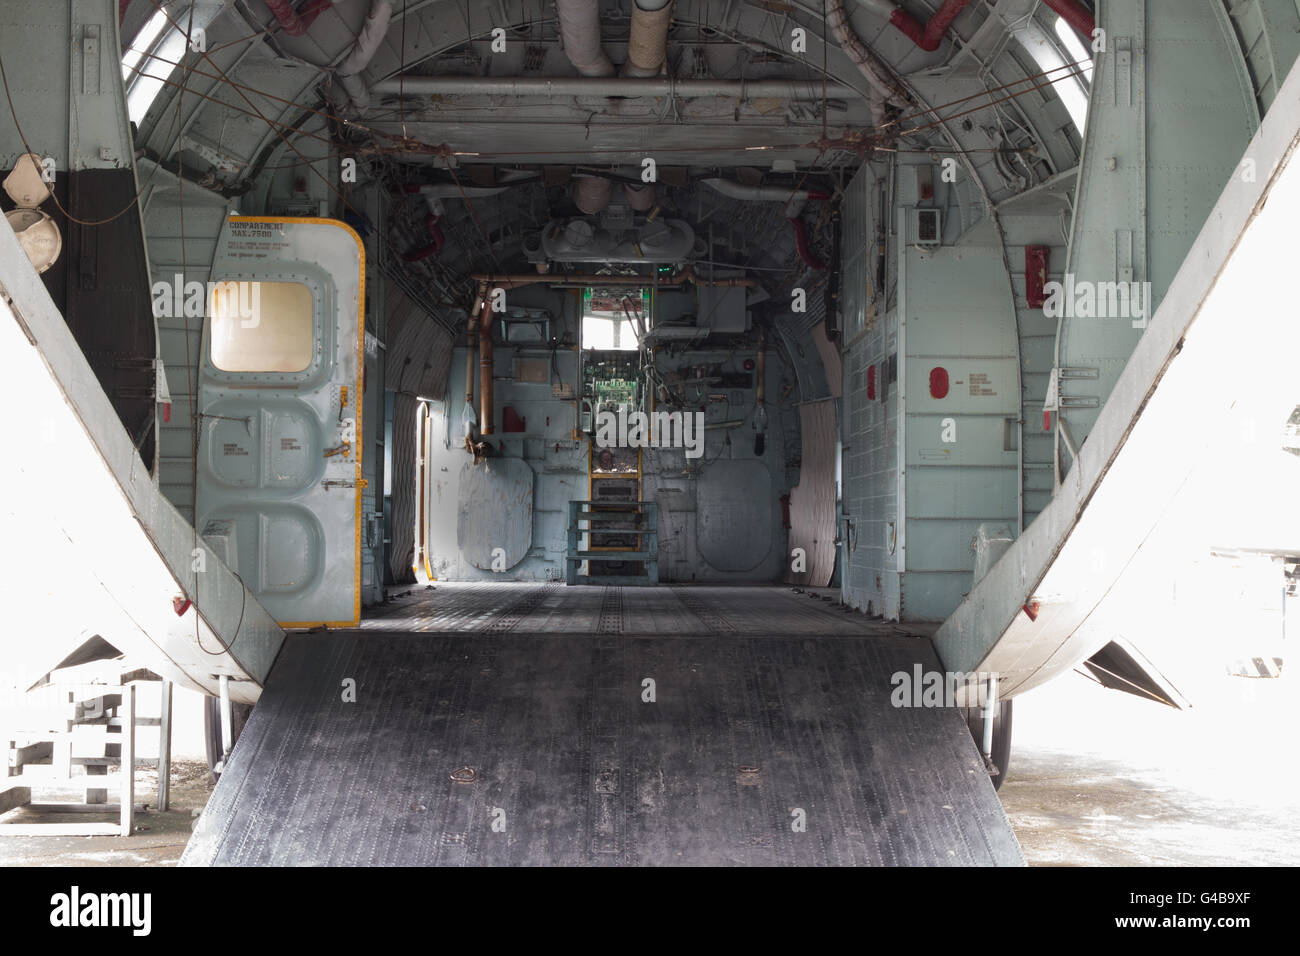 Cargo compartment of military transport jet - Stock Image